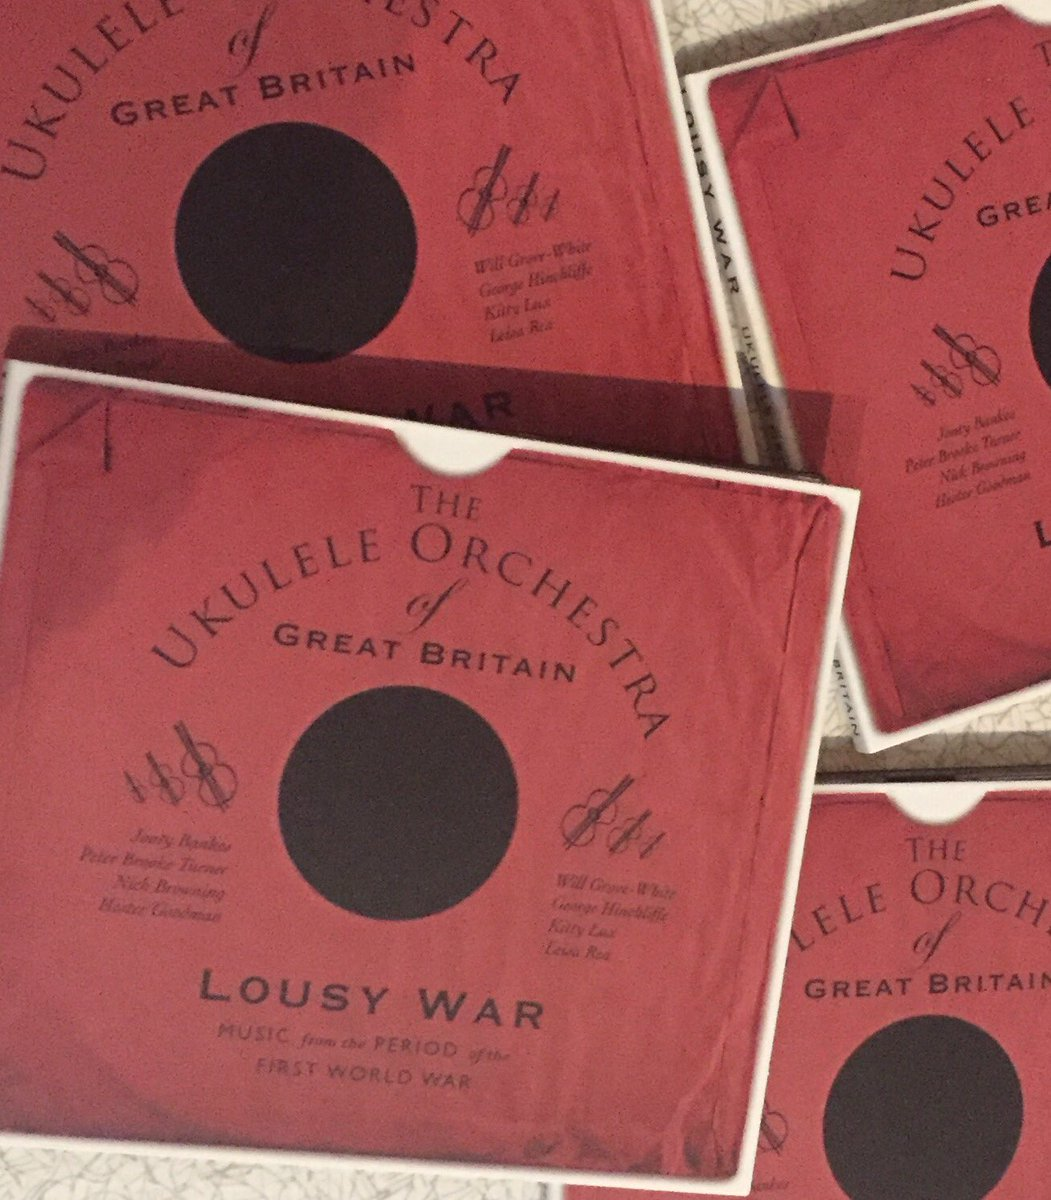 Our album 'Lousy War' featuring music from the period of WW1 now available from our website https://t.co/6V5TX7G2UE https://t.co/fAB78scScZ